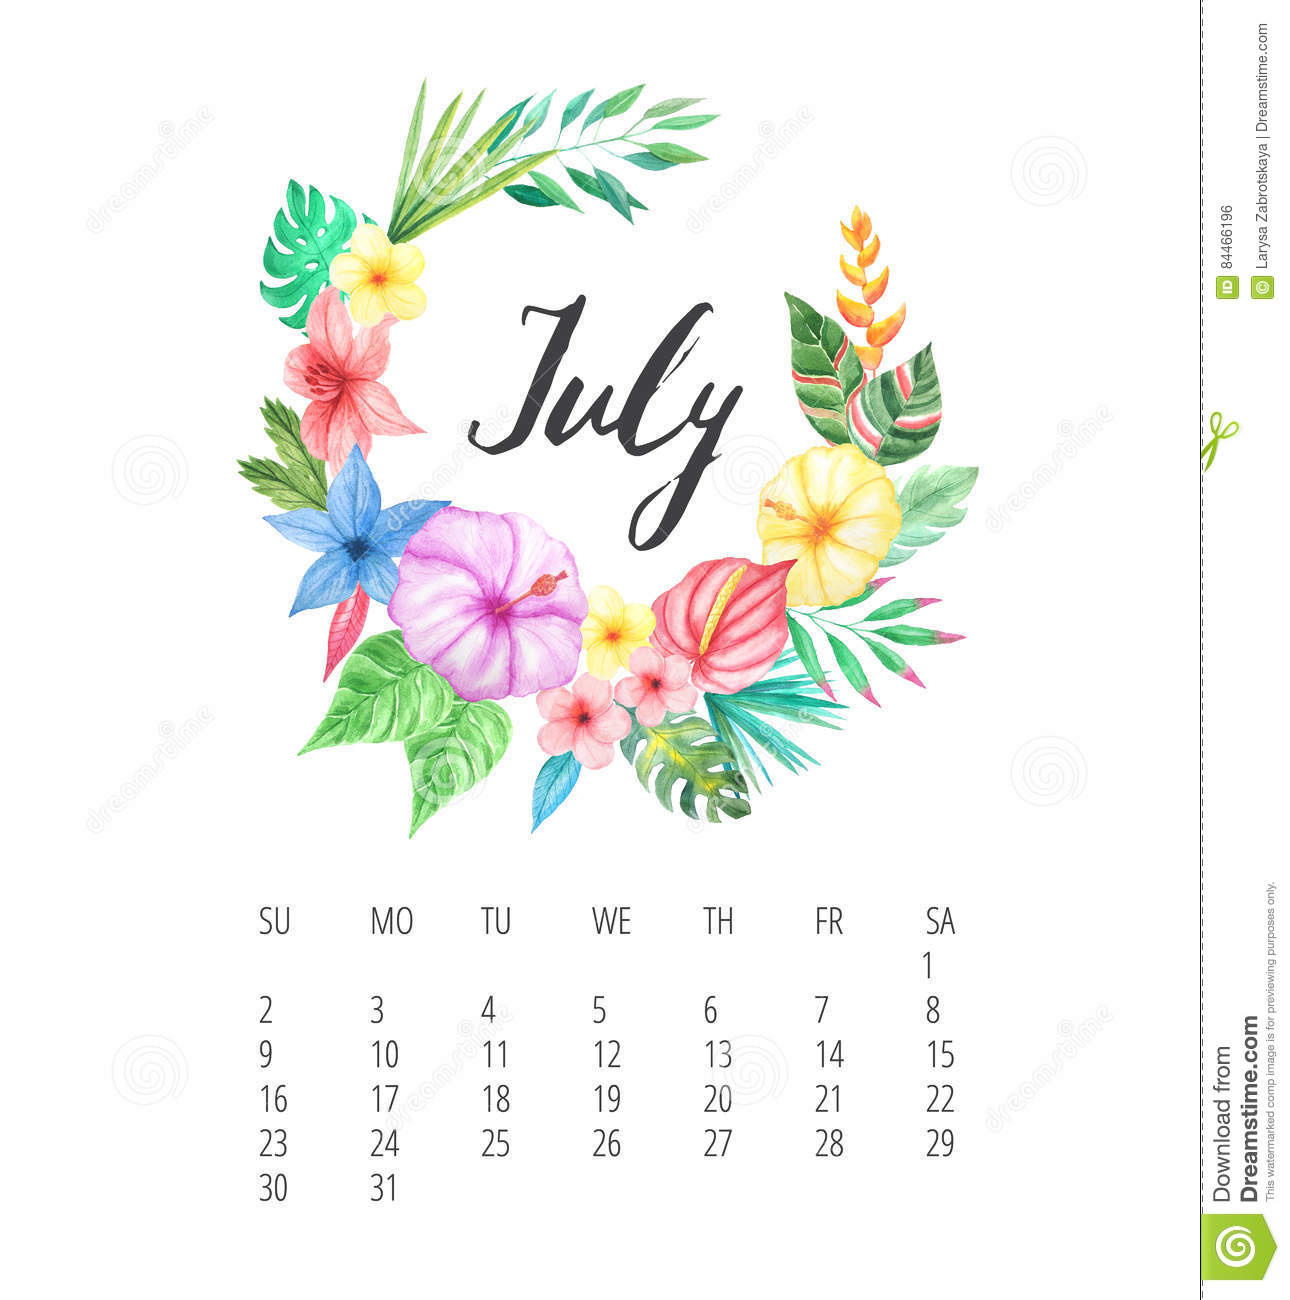 Watercolor Calendar Template For July 2017 Year Stock Illustration with regard to July Calendar Template Flowers